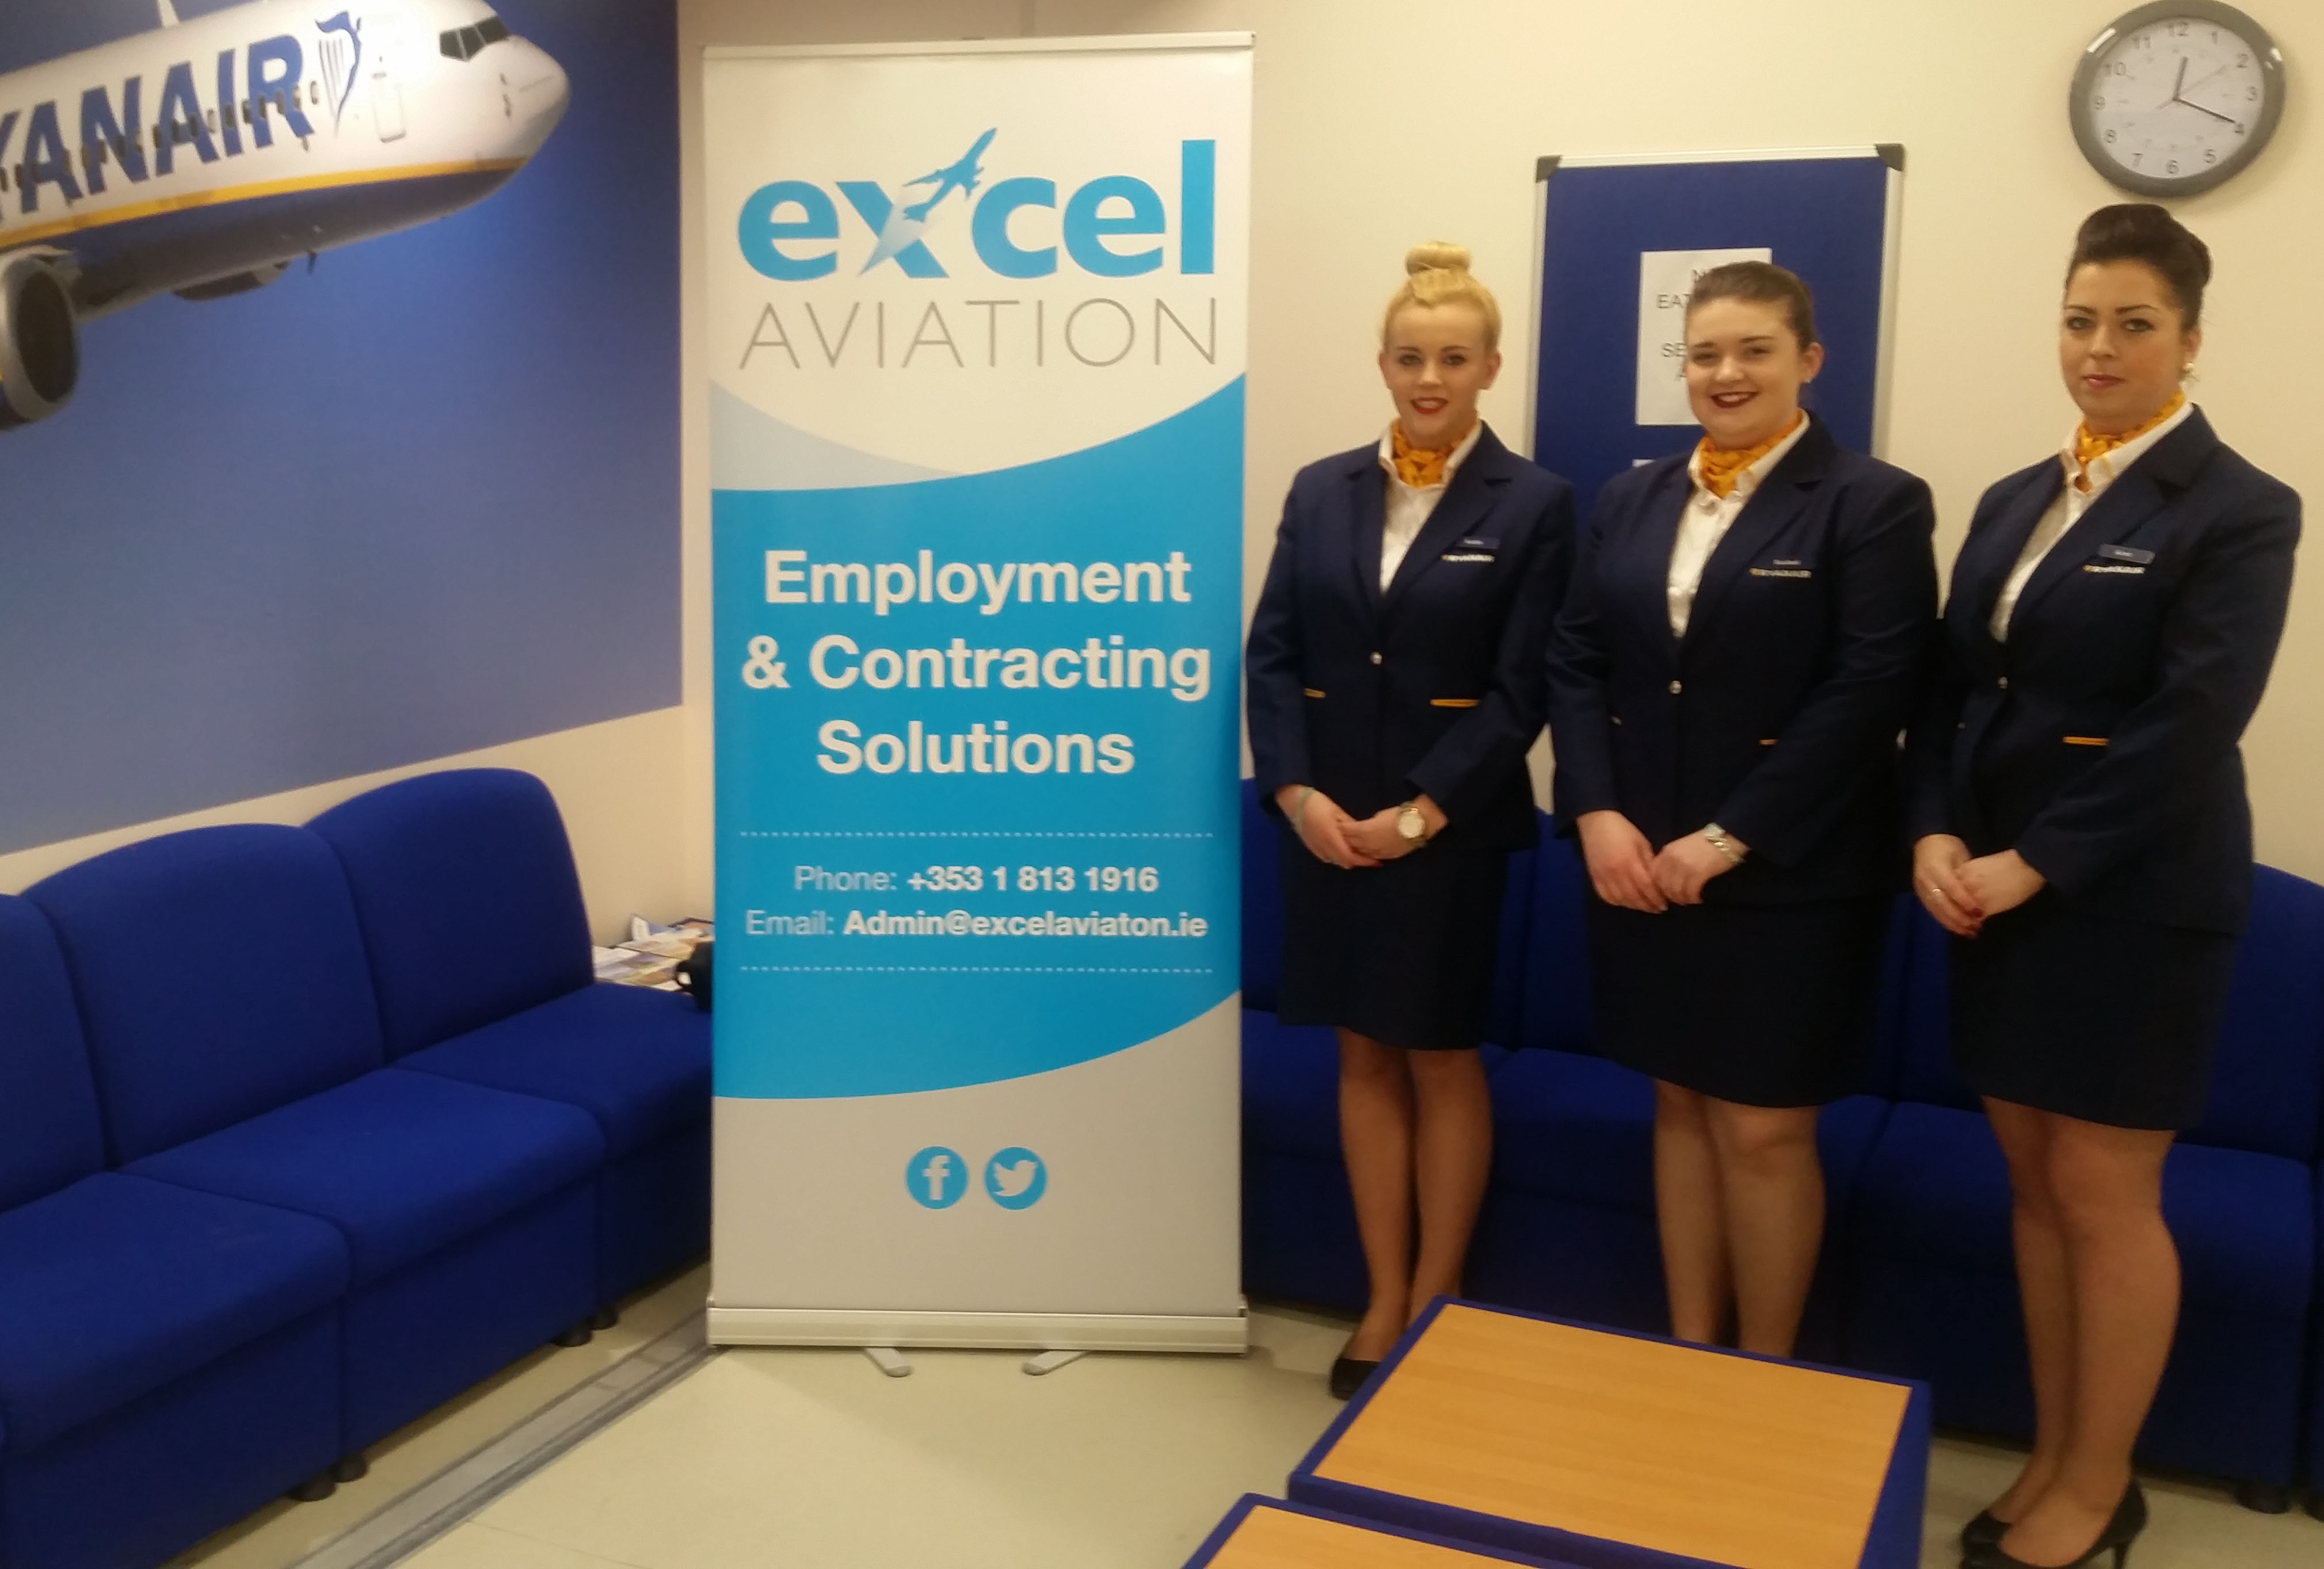 Excel Aviations Ryanair Check In Agents Girls Graduating in April 2016